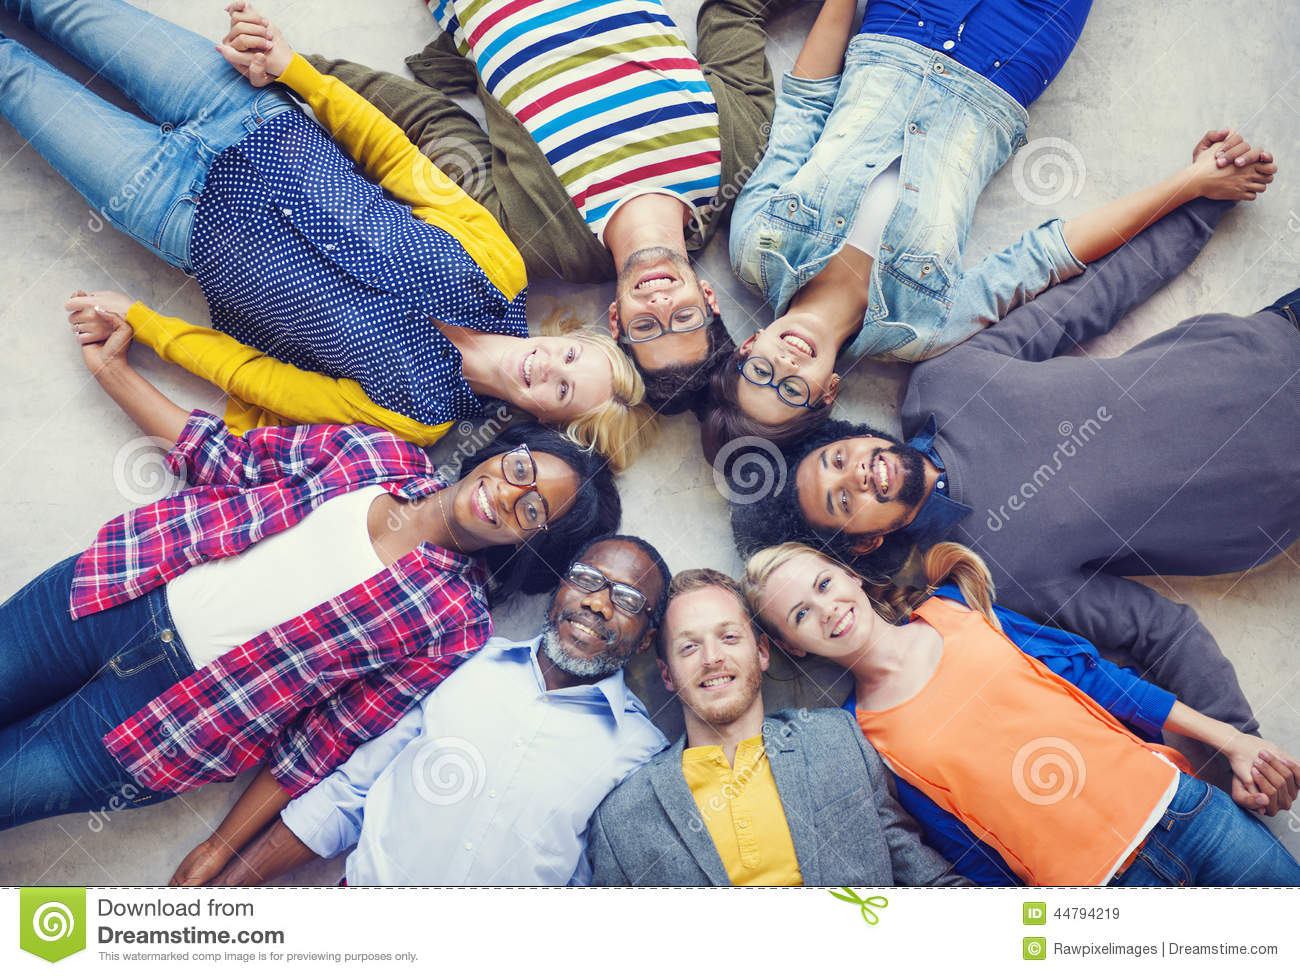 Multiethnic People Holding Hands and Lying Down